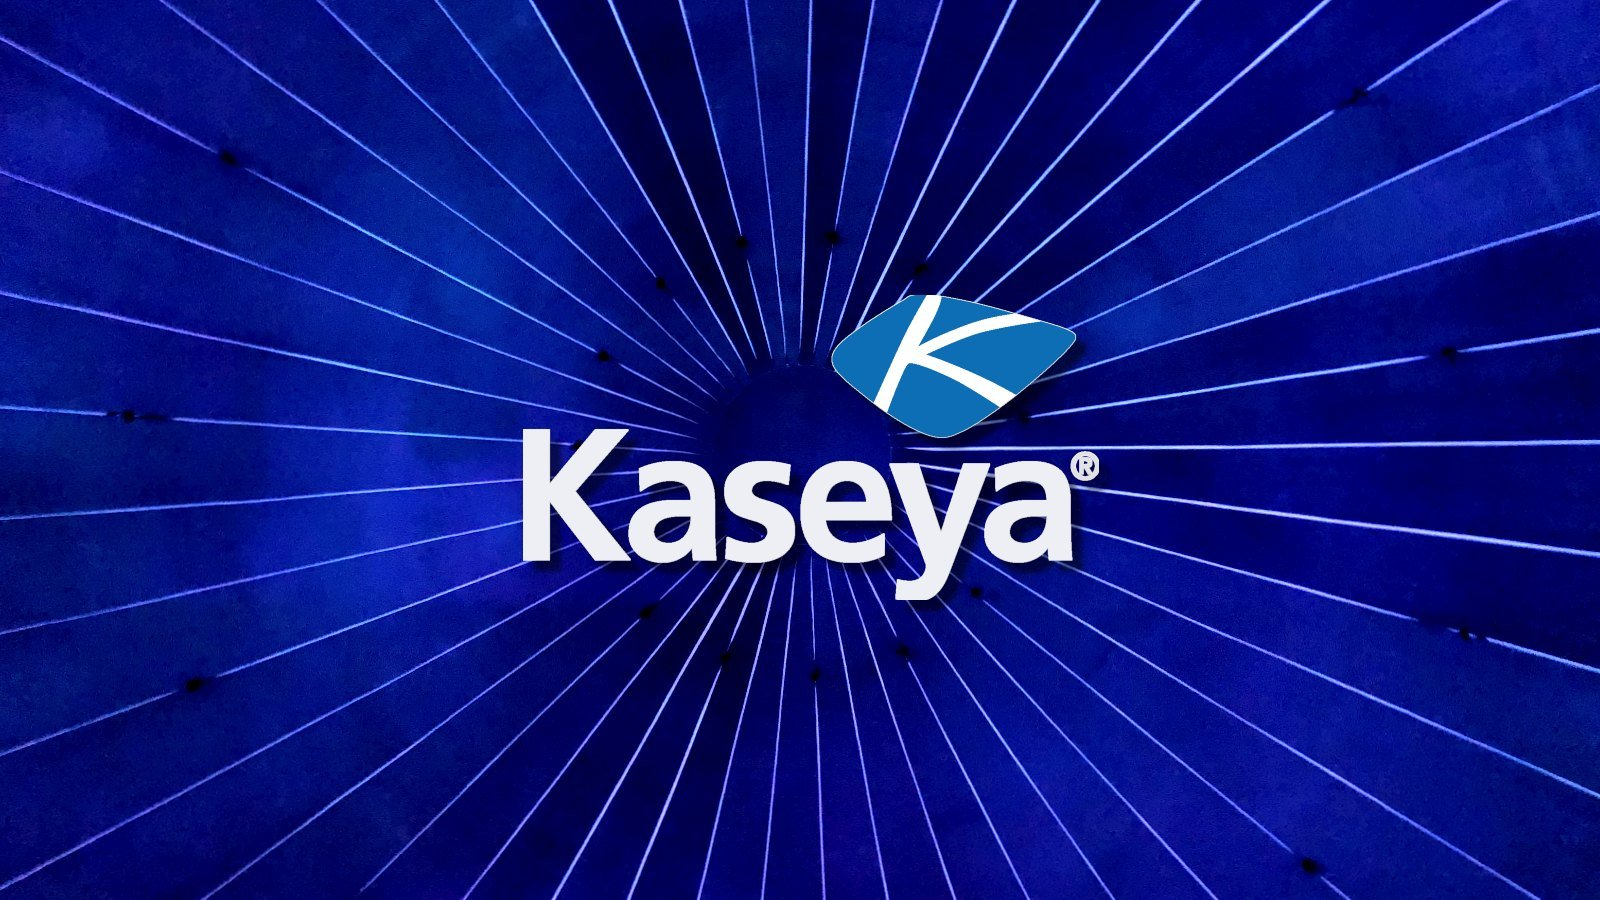 Kaseya patches VSA vulnerabilities used in REvil ransomware attack